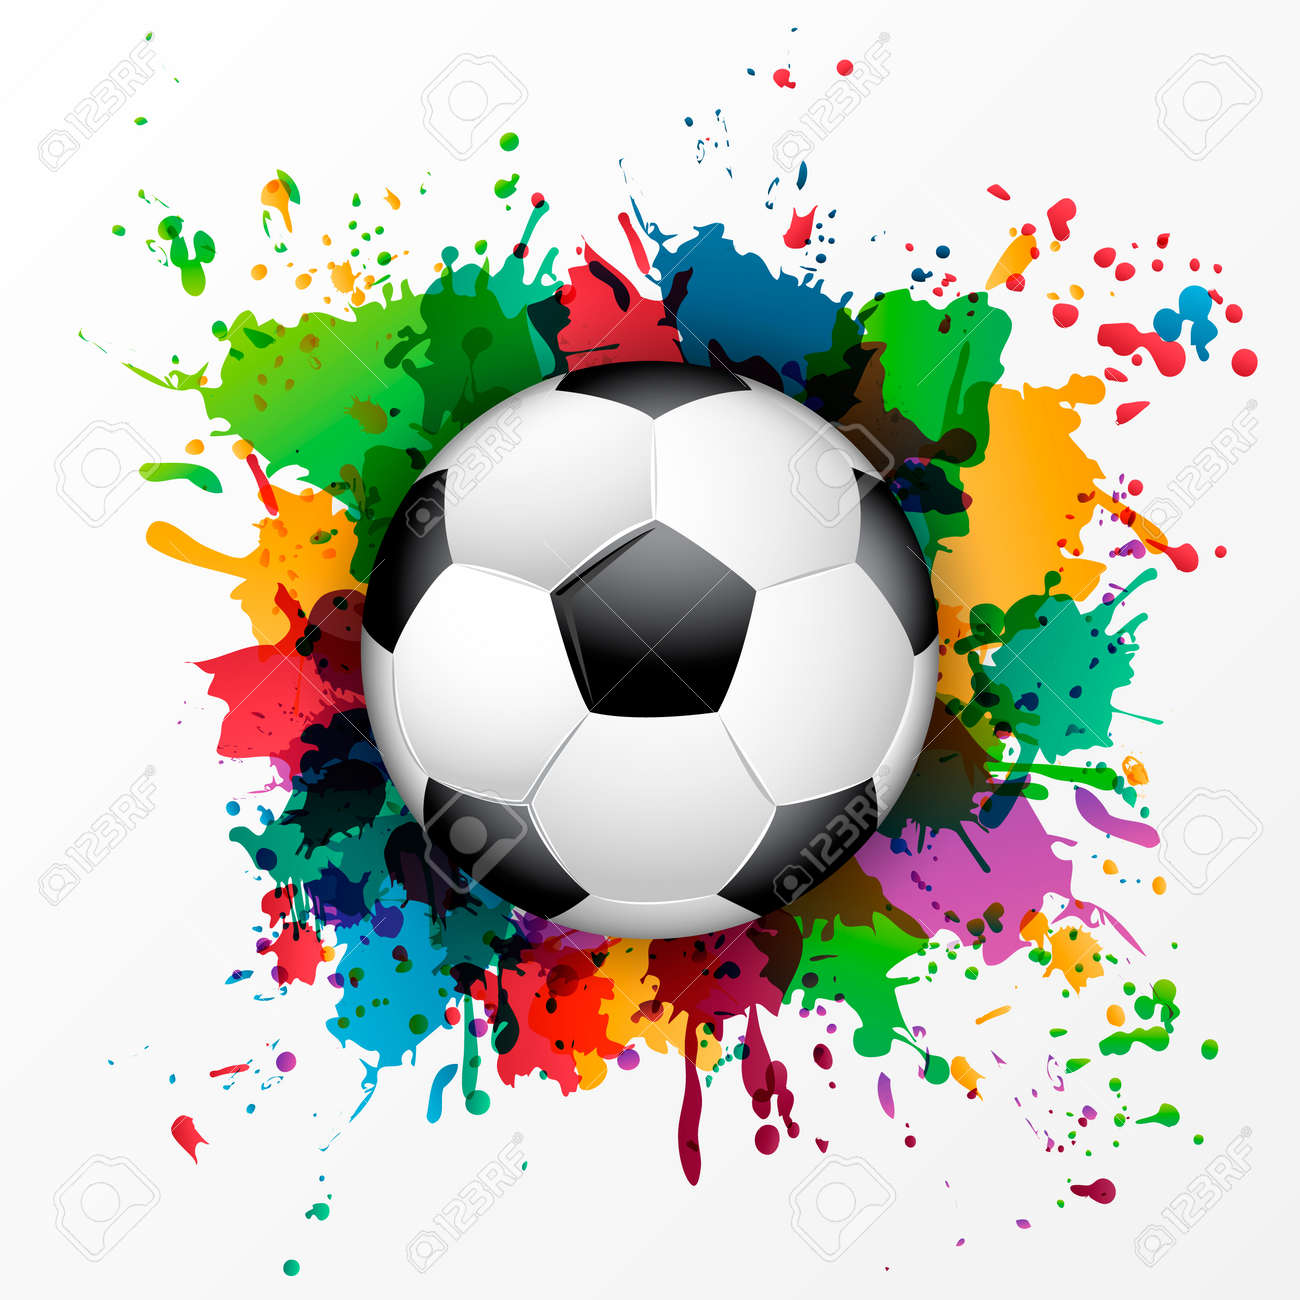 soccer ball with colorful spray paint template background royalty